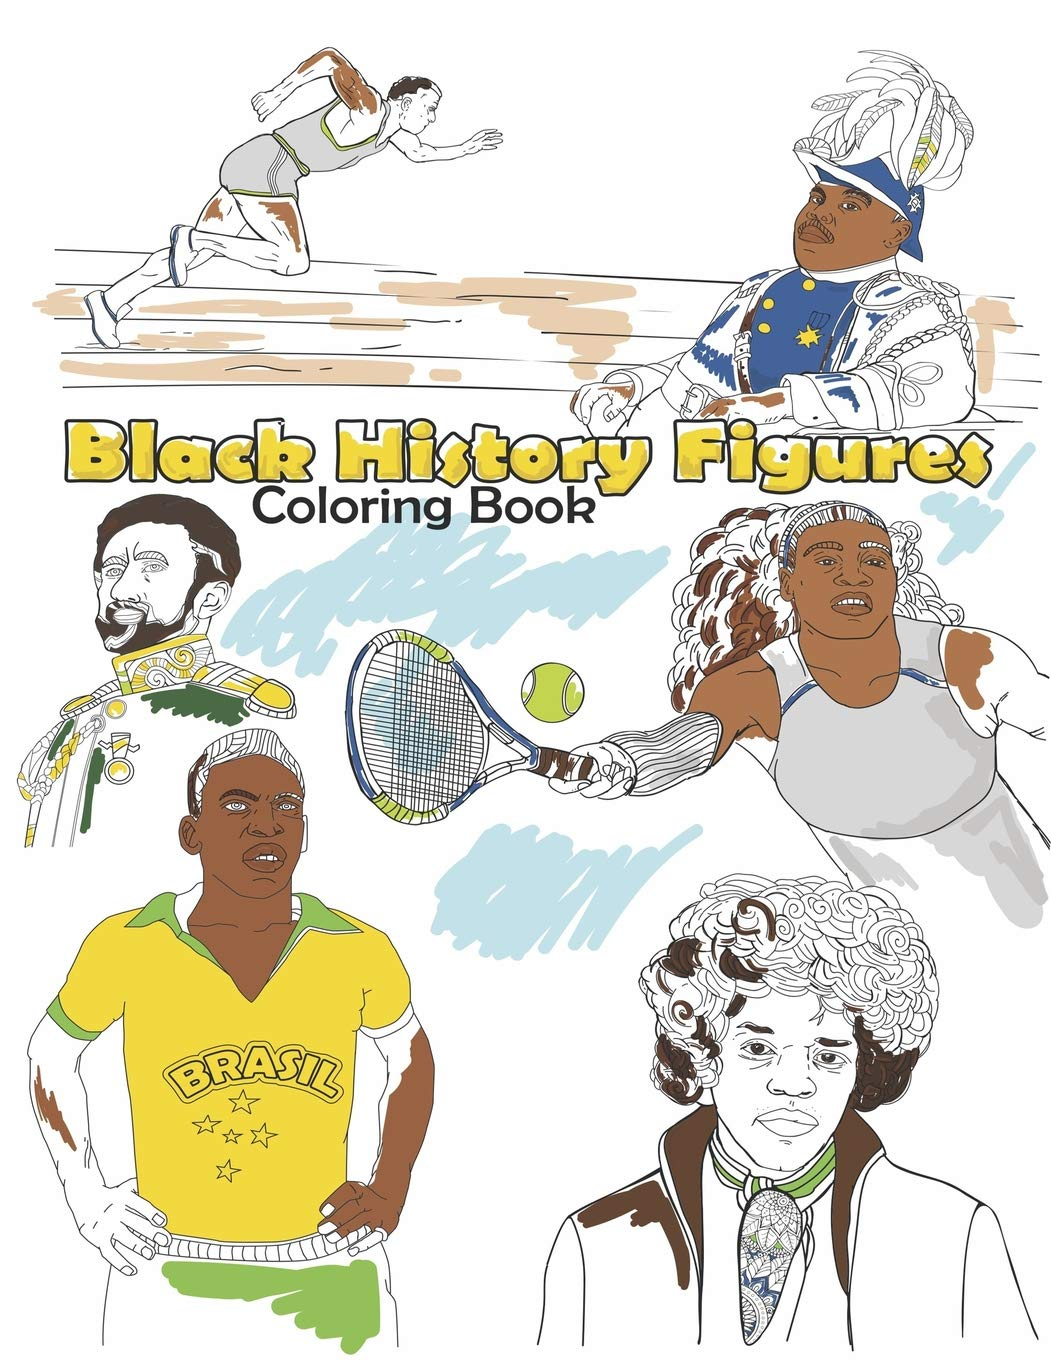 - Black History Figures Coloring Book: Famous Black People Adult